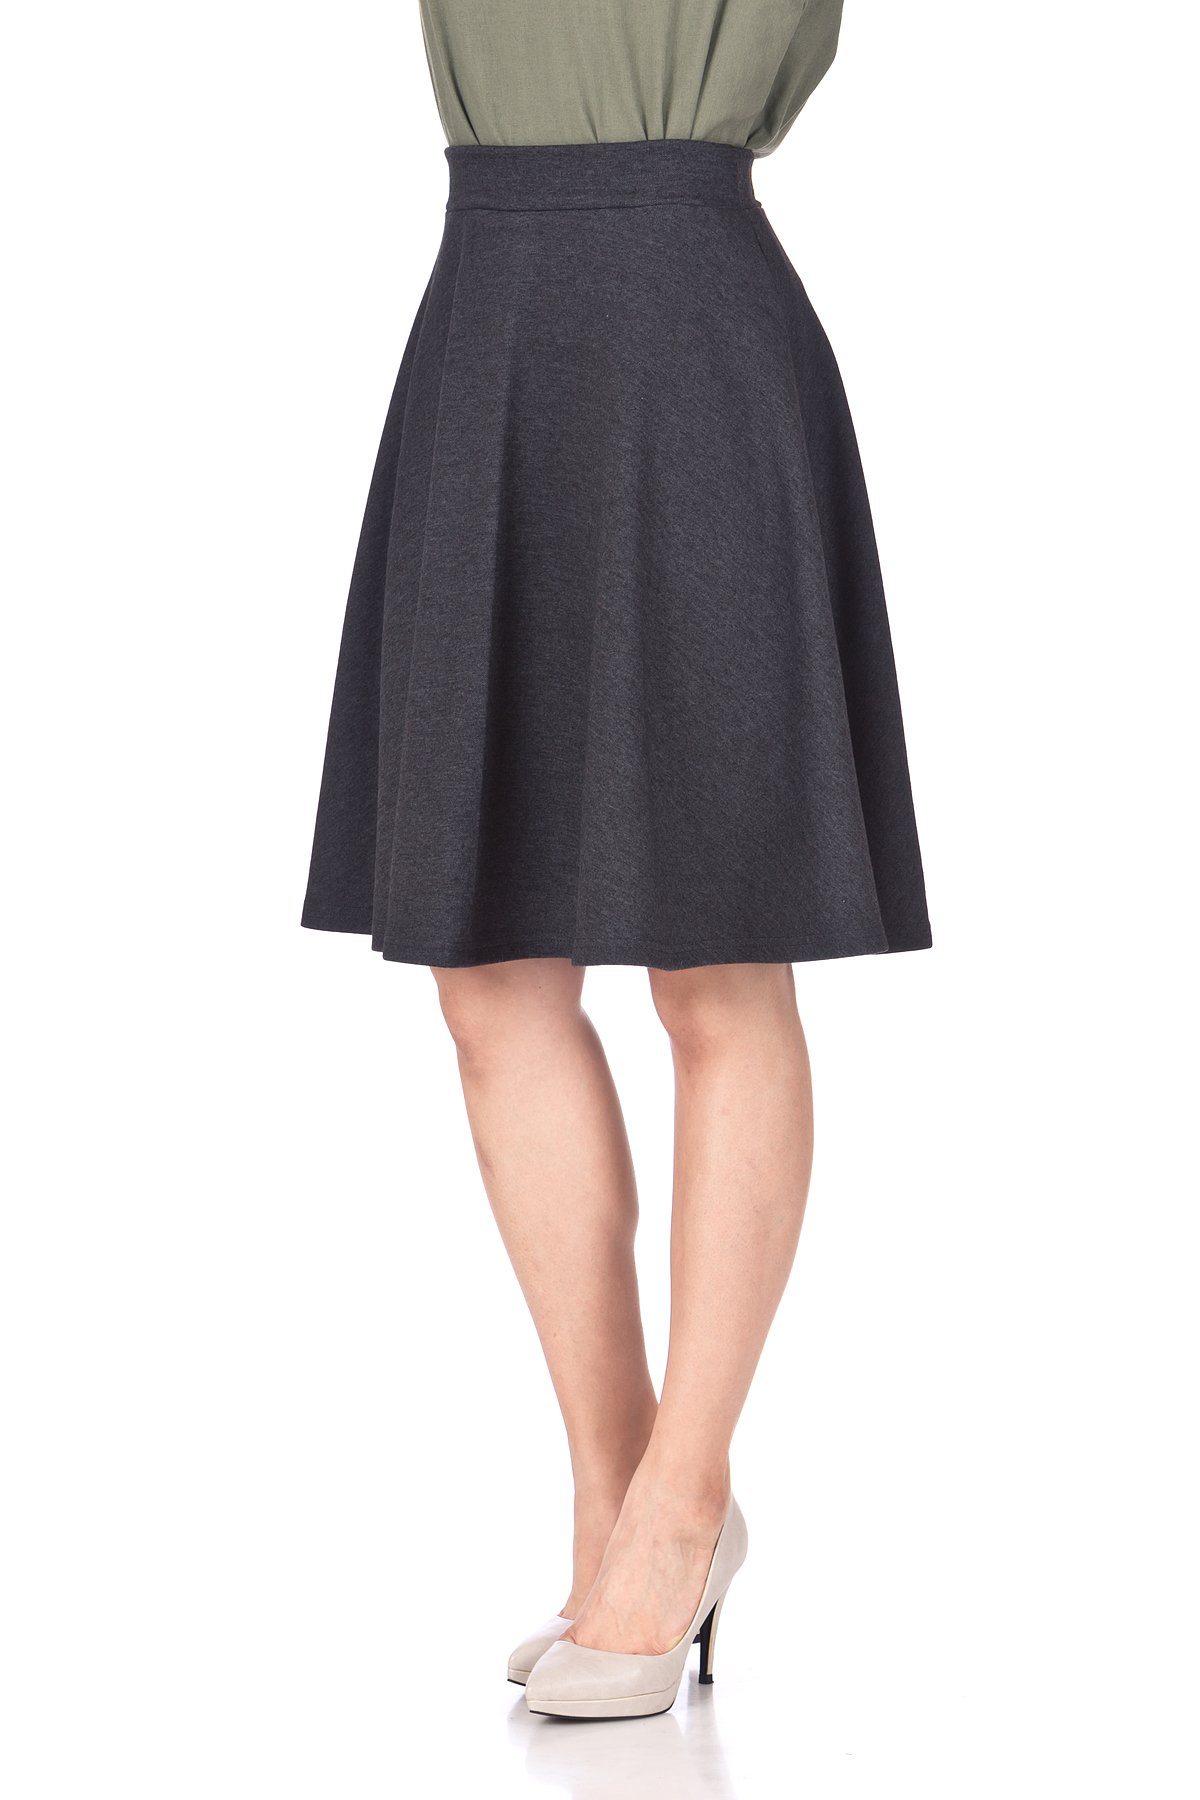 Comfy and Lovely Cotton Blend Versatile Casual Office High Waist A line Full Flared Swing Circle Skater Knee Length Skirt Charcoal 06